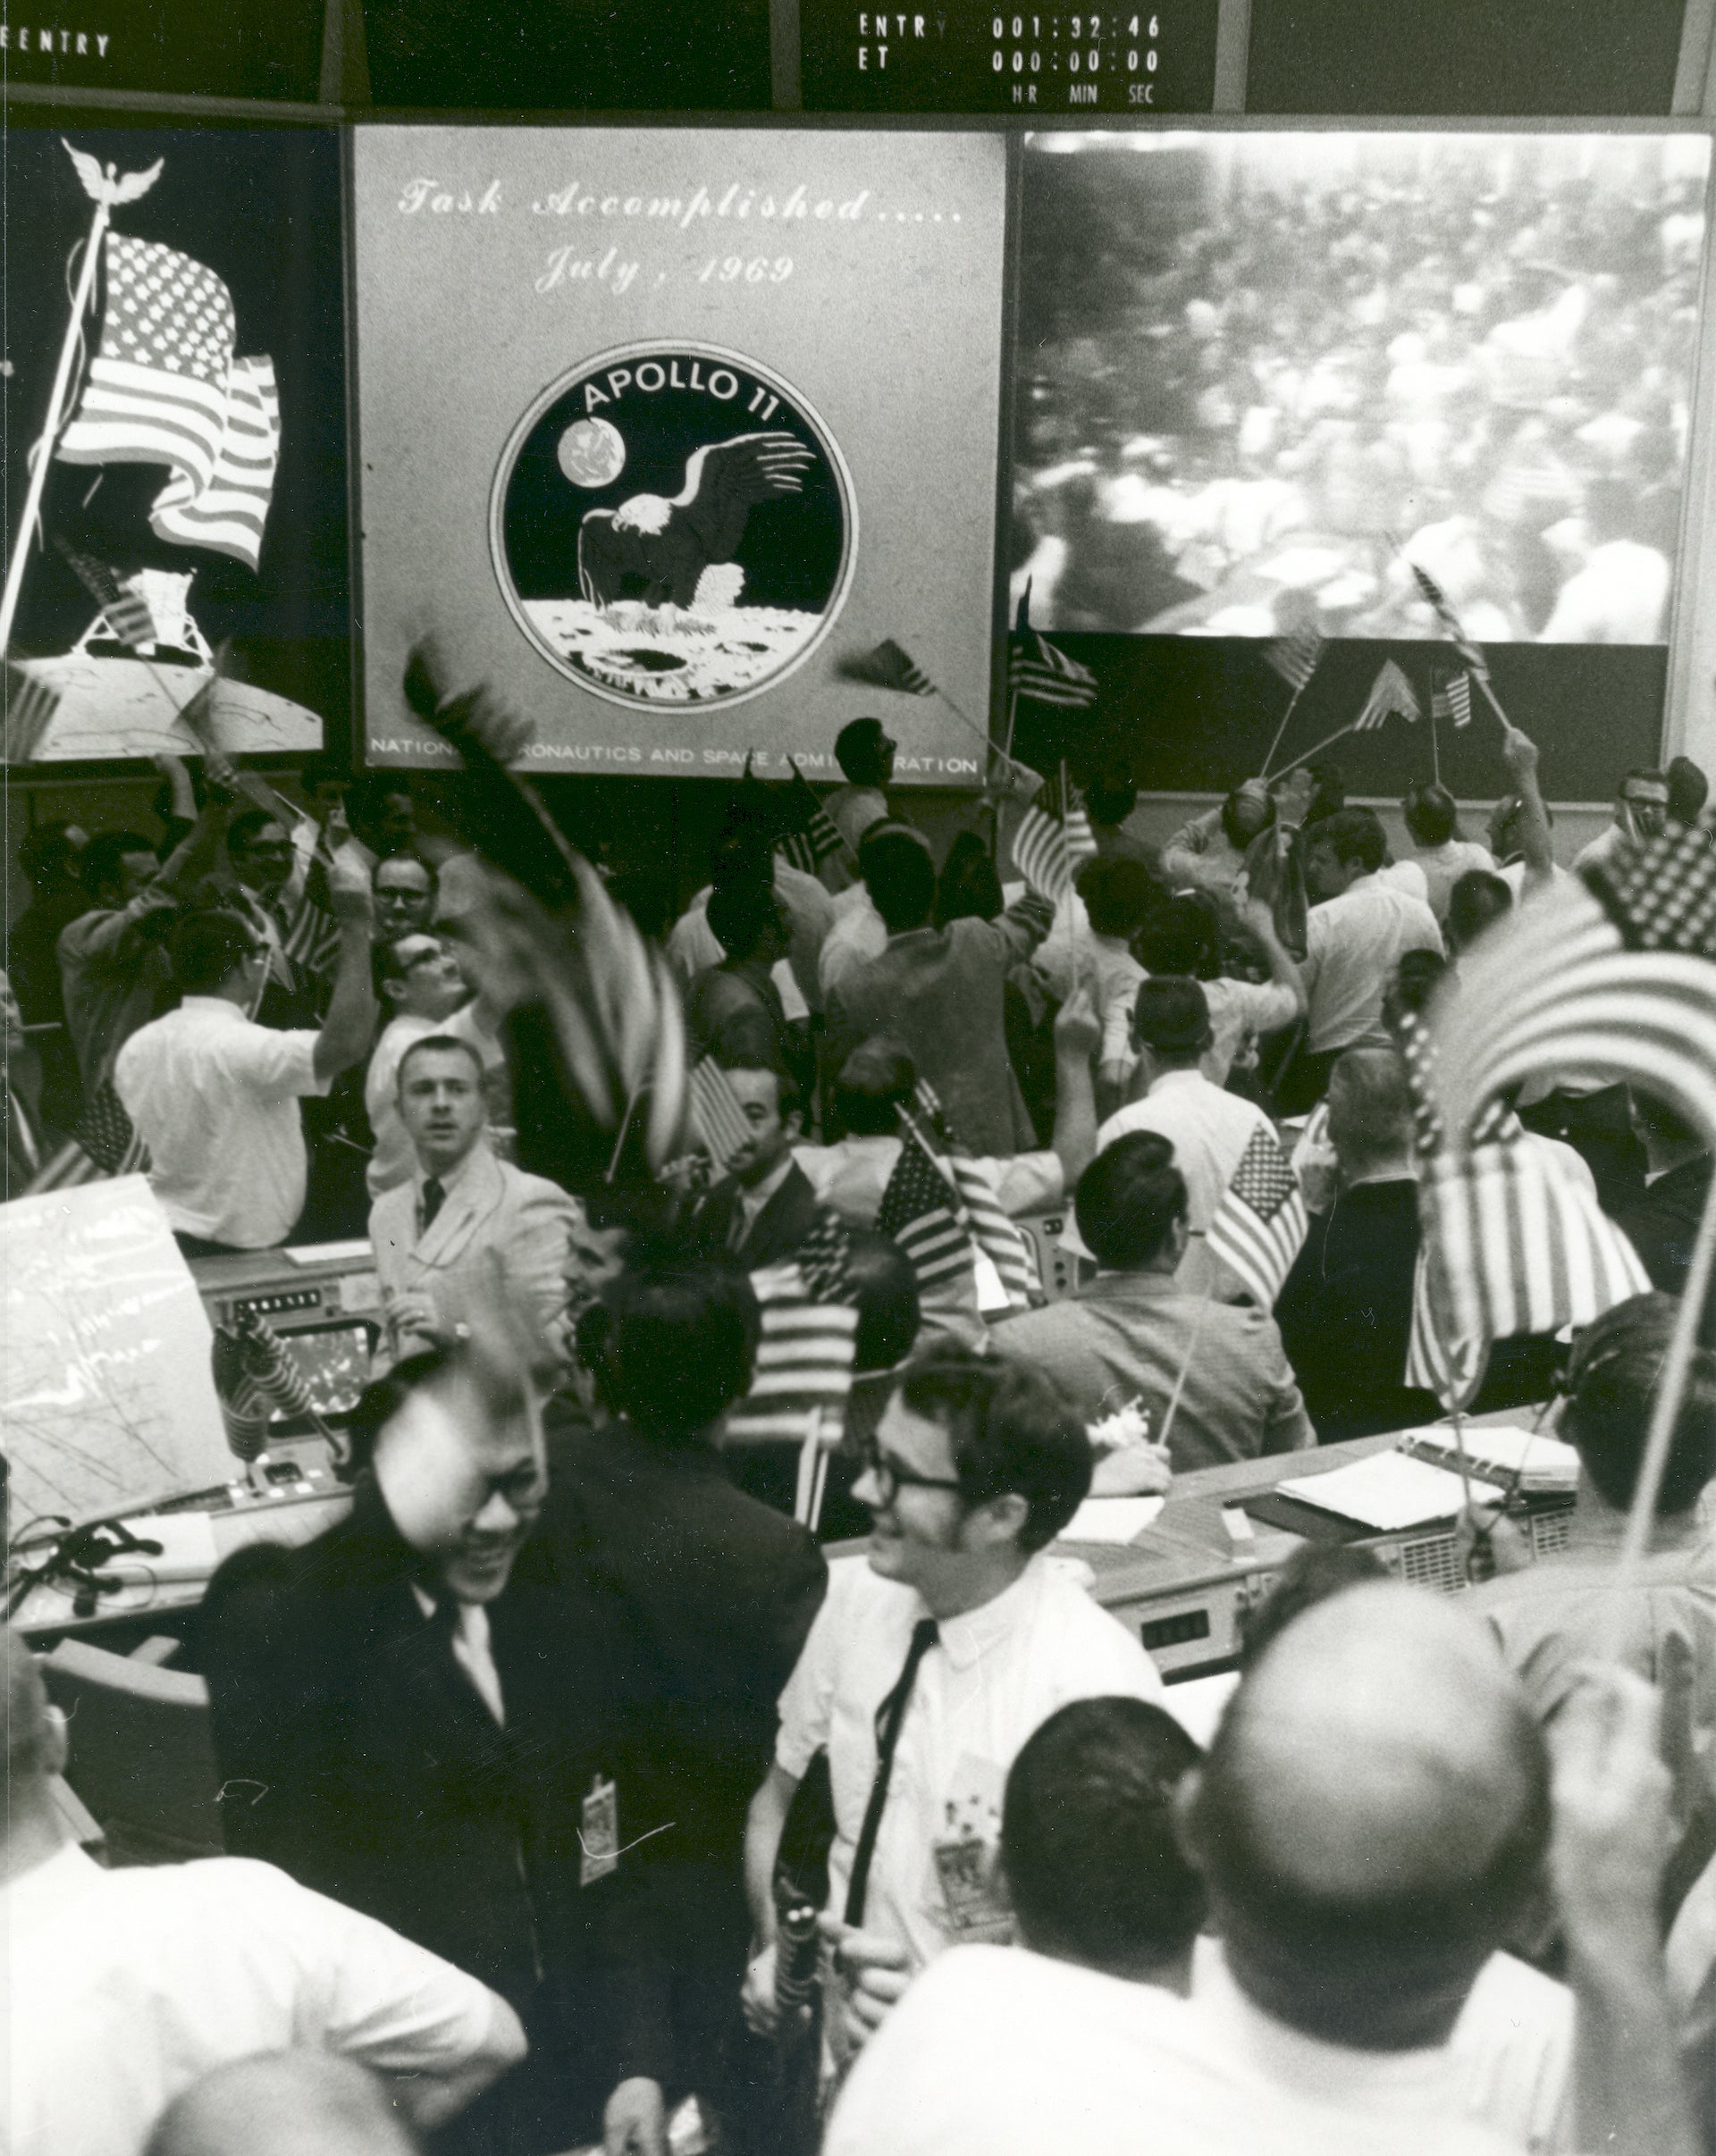 """Flight controllers celebrate the successful conclusion of the Apollo 11 lunar landing mission on July 24, 1969, at NASA's Mission Control Center in Houston. On July 20, Apollo 11 astronaut Neil Armstrong planted the first human foot on another world. With more than half a billion people watching on television, he climbed down the ladder and proclaimed: """"That's one small step for a man, one giant leap for mankind."""" Photo © NASA"""